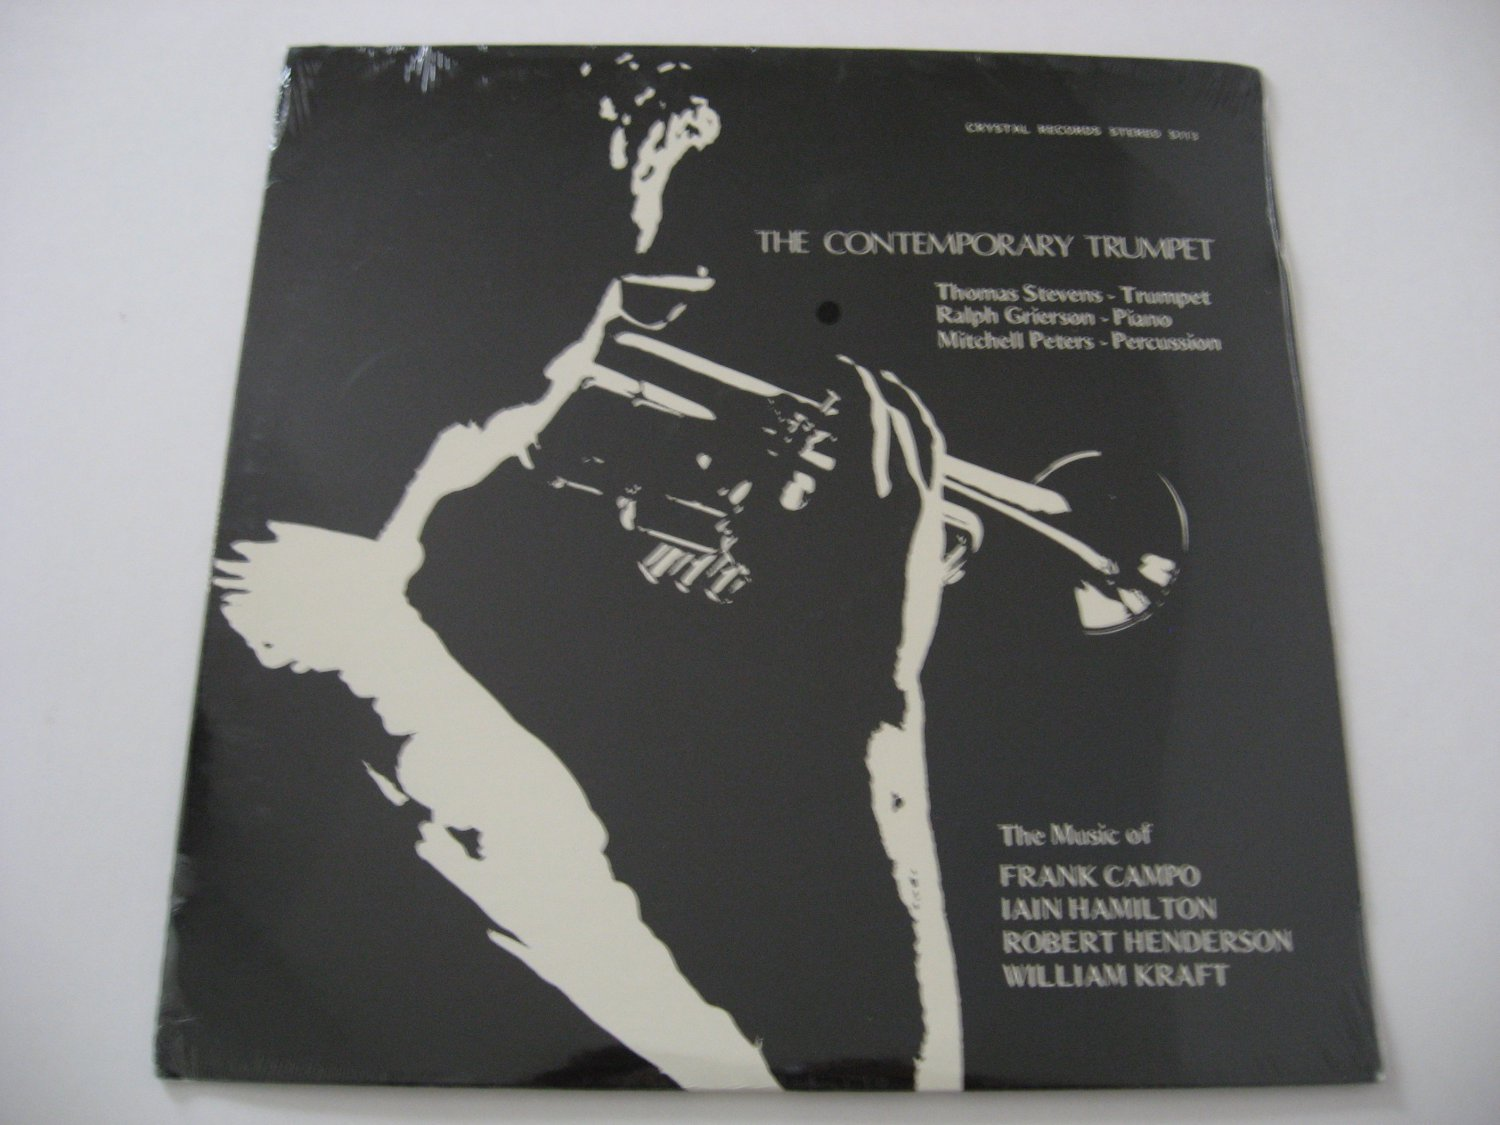 Limited Edition Rare! - Sealed! - Thomas Stevens - Ralph Grierson - The Contemporary Trumpet